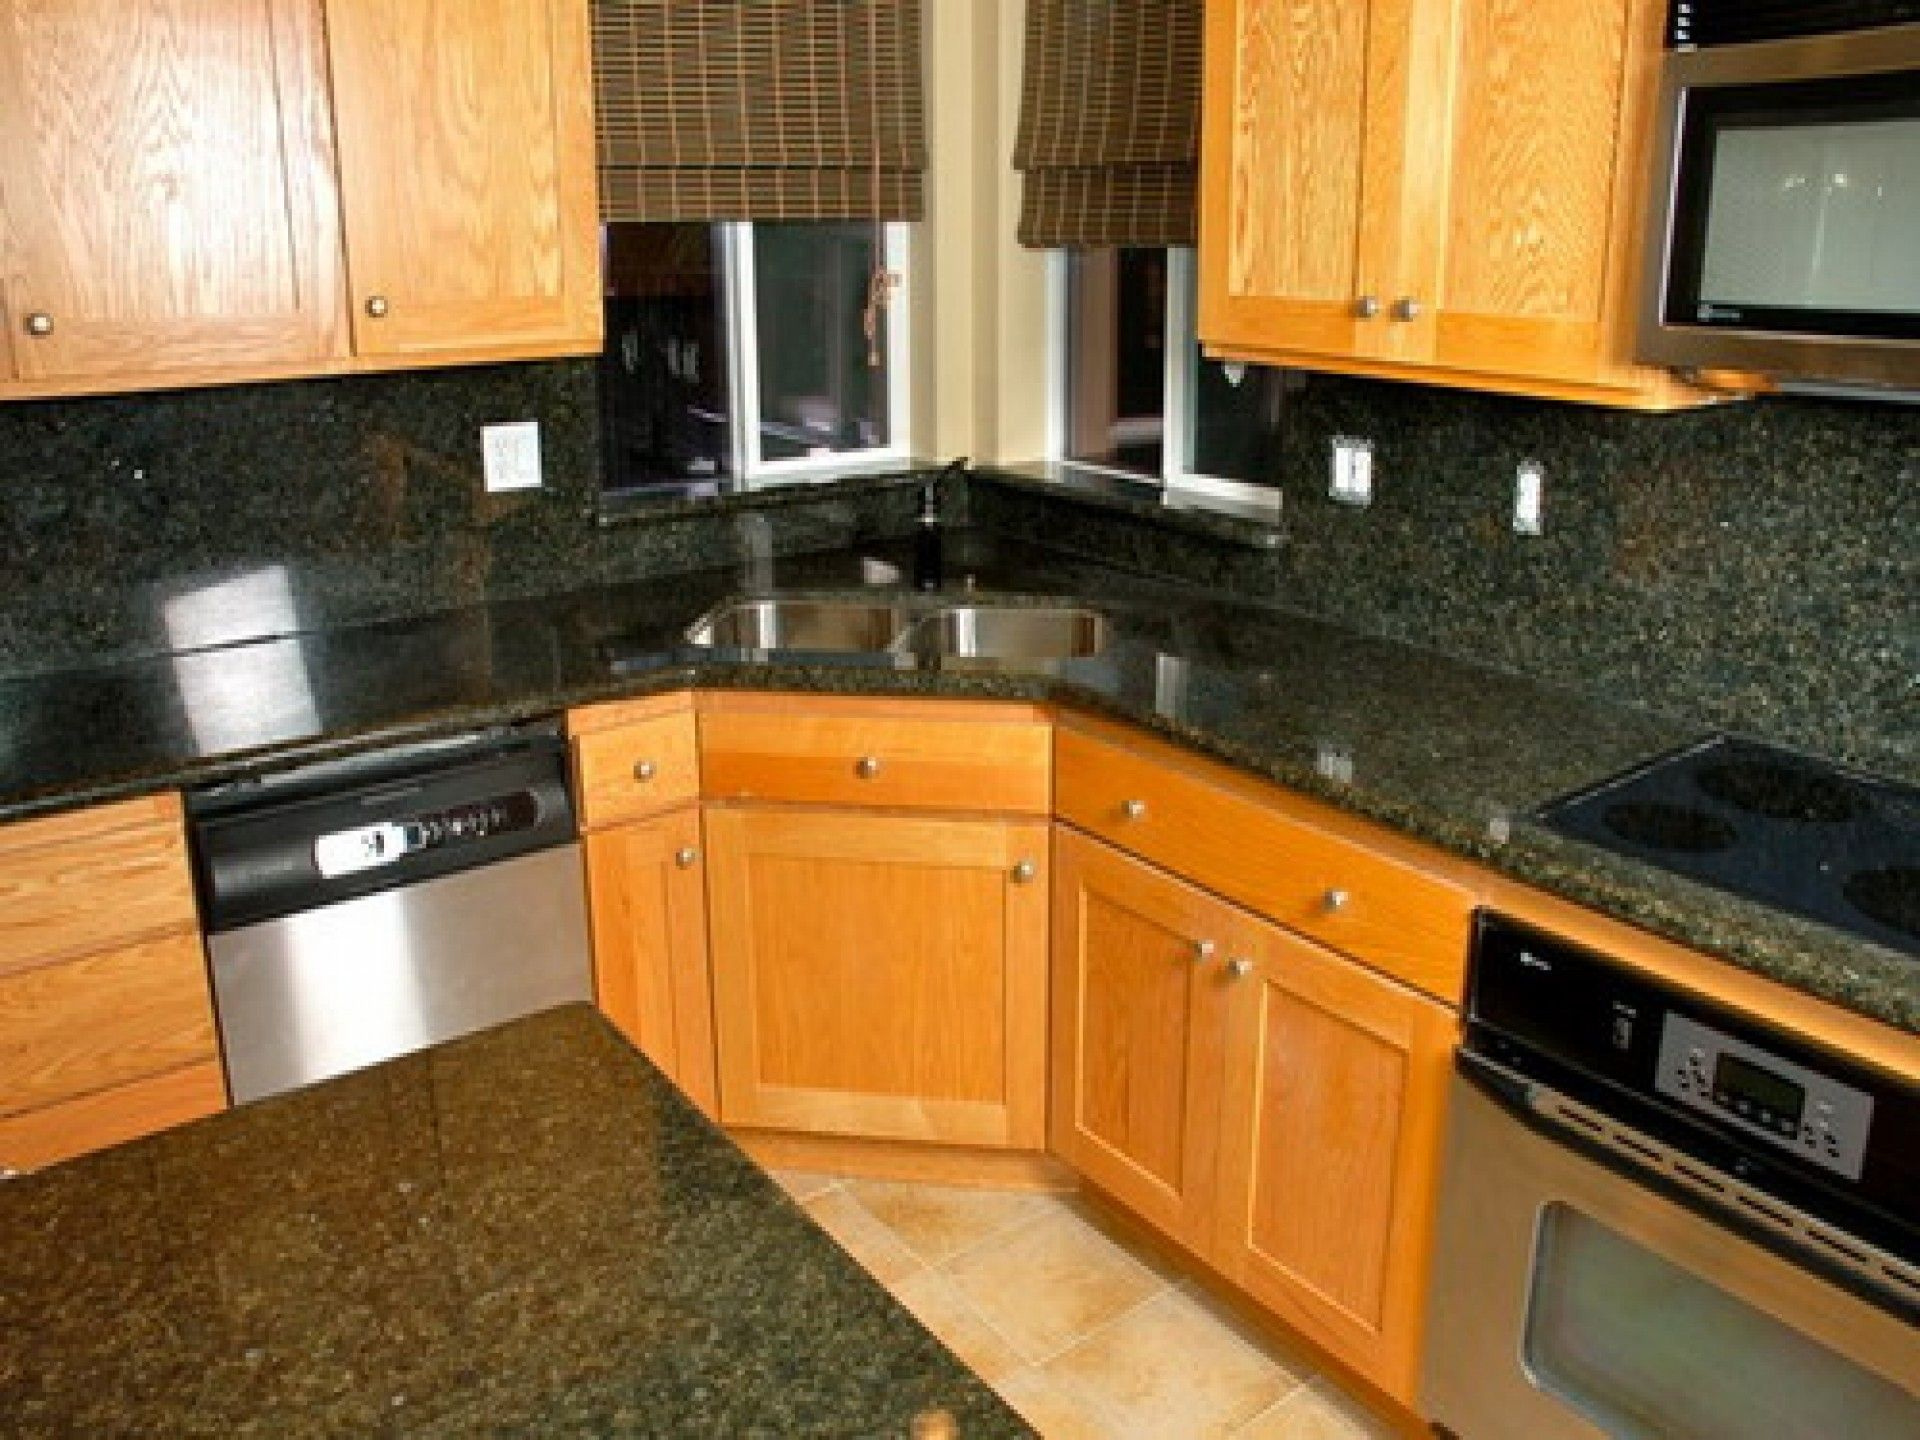 Ivory Oak Kitchen Cabinet With Black Granite Counter Tops And Back ...